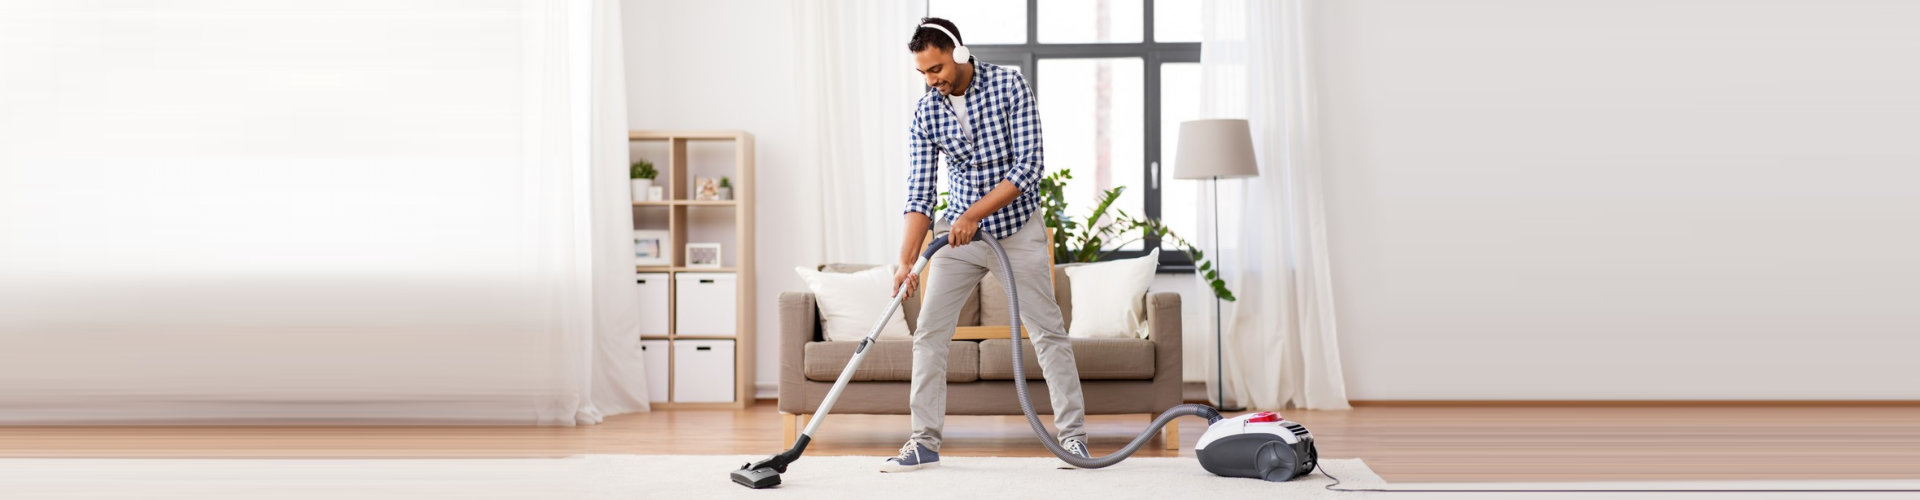 male housekeeping cleaning the carpet using vacuum cleaner